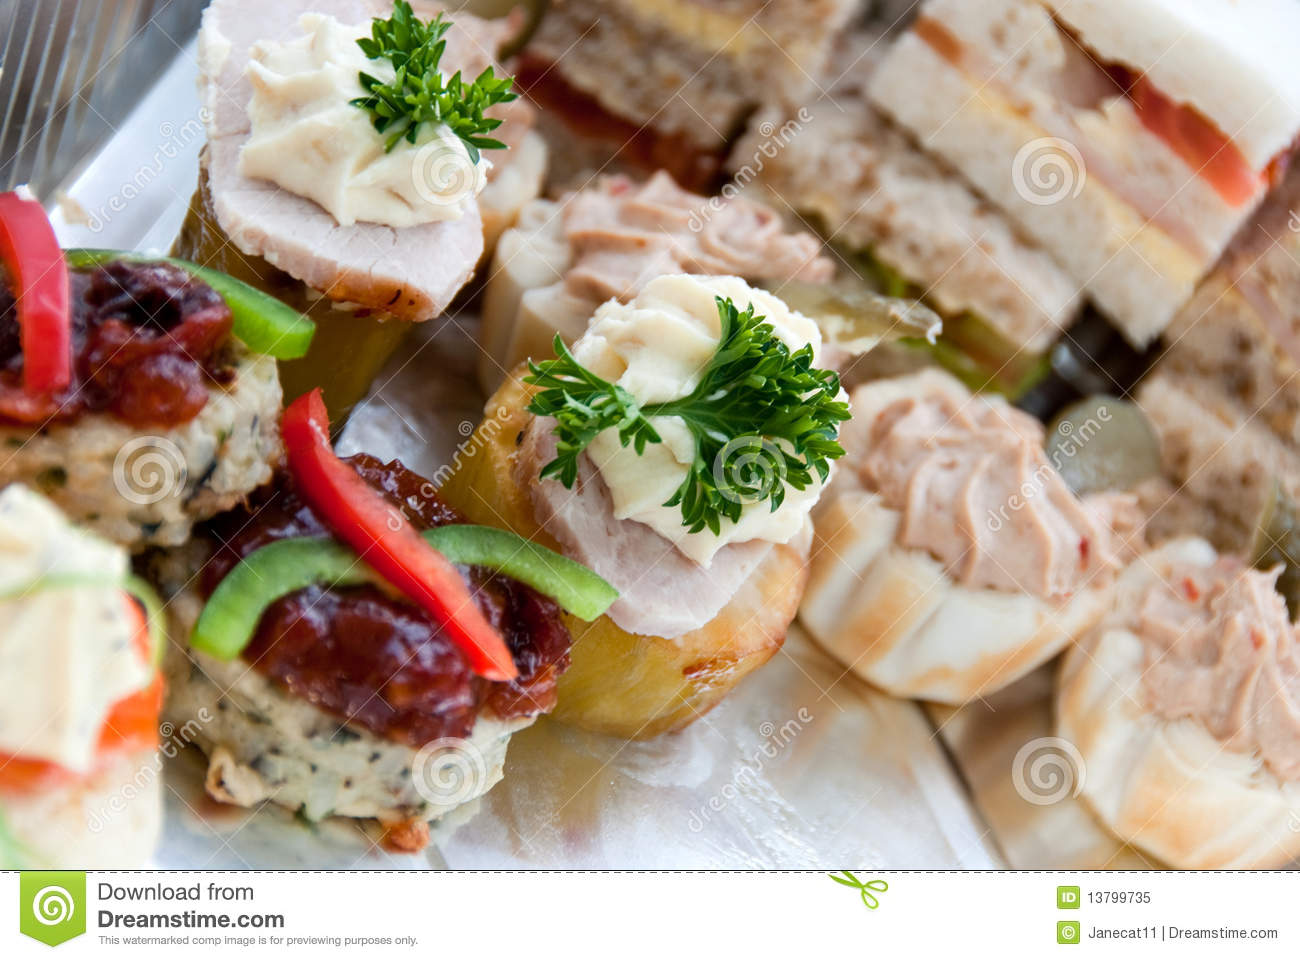 Canapes royalty free stock photo image 13799735 for Canape sandwiches